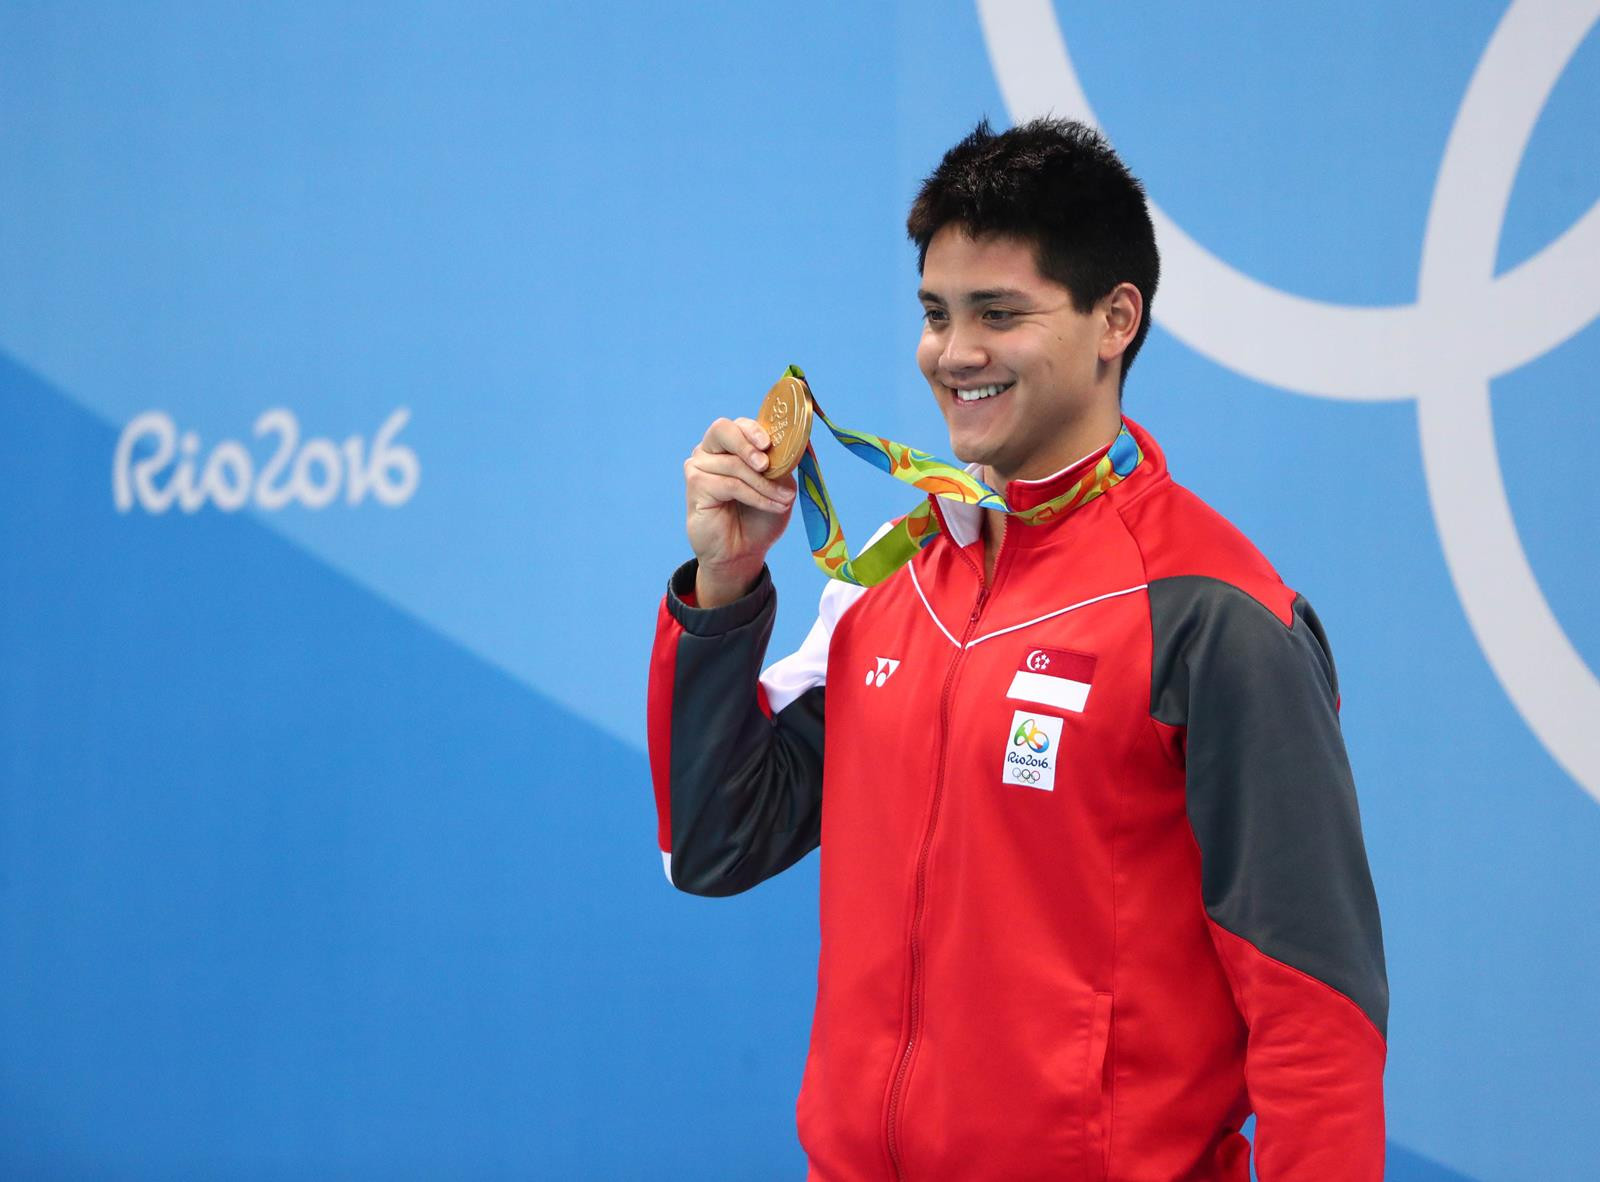 Swimmer Joseph Schooling won Singapore's first Olympic gold medal at Rio 2016 ©Getty Images